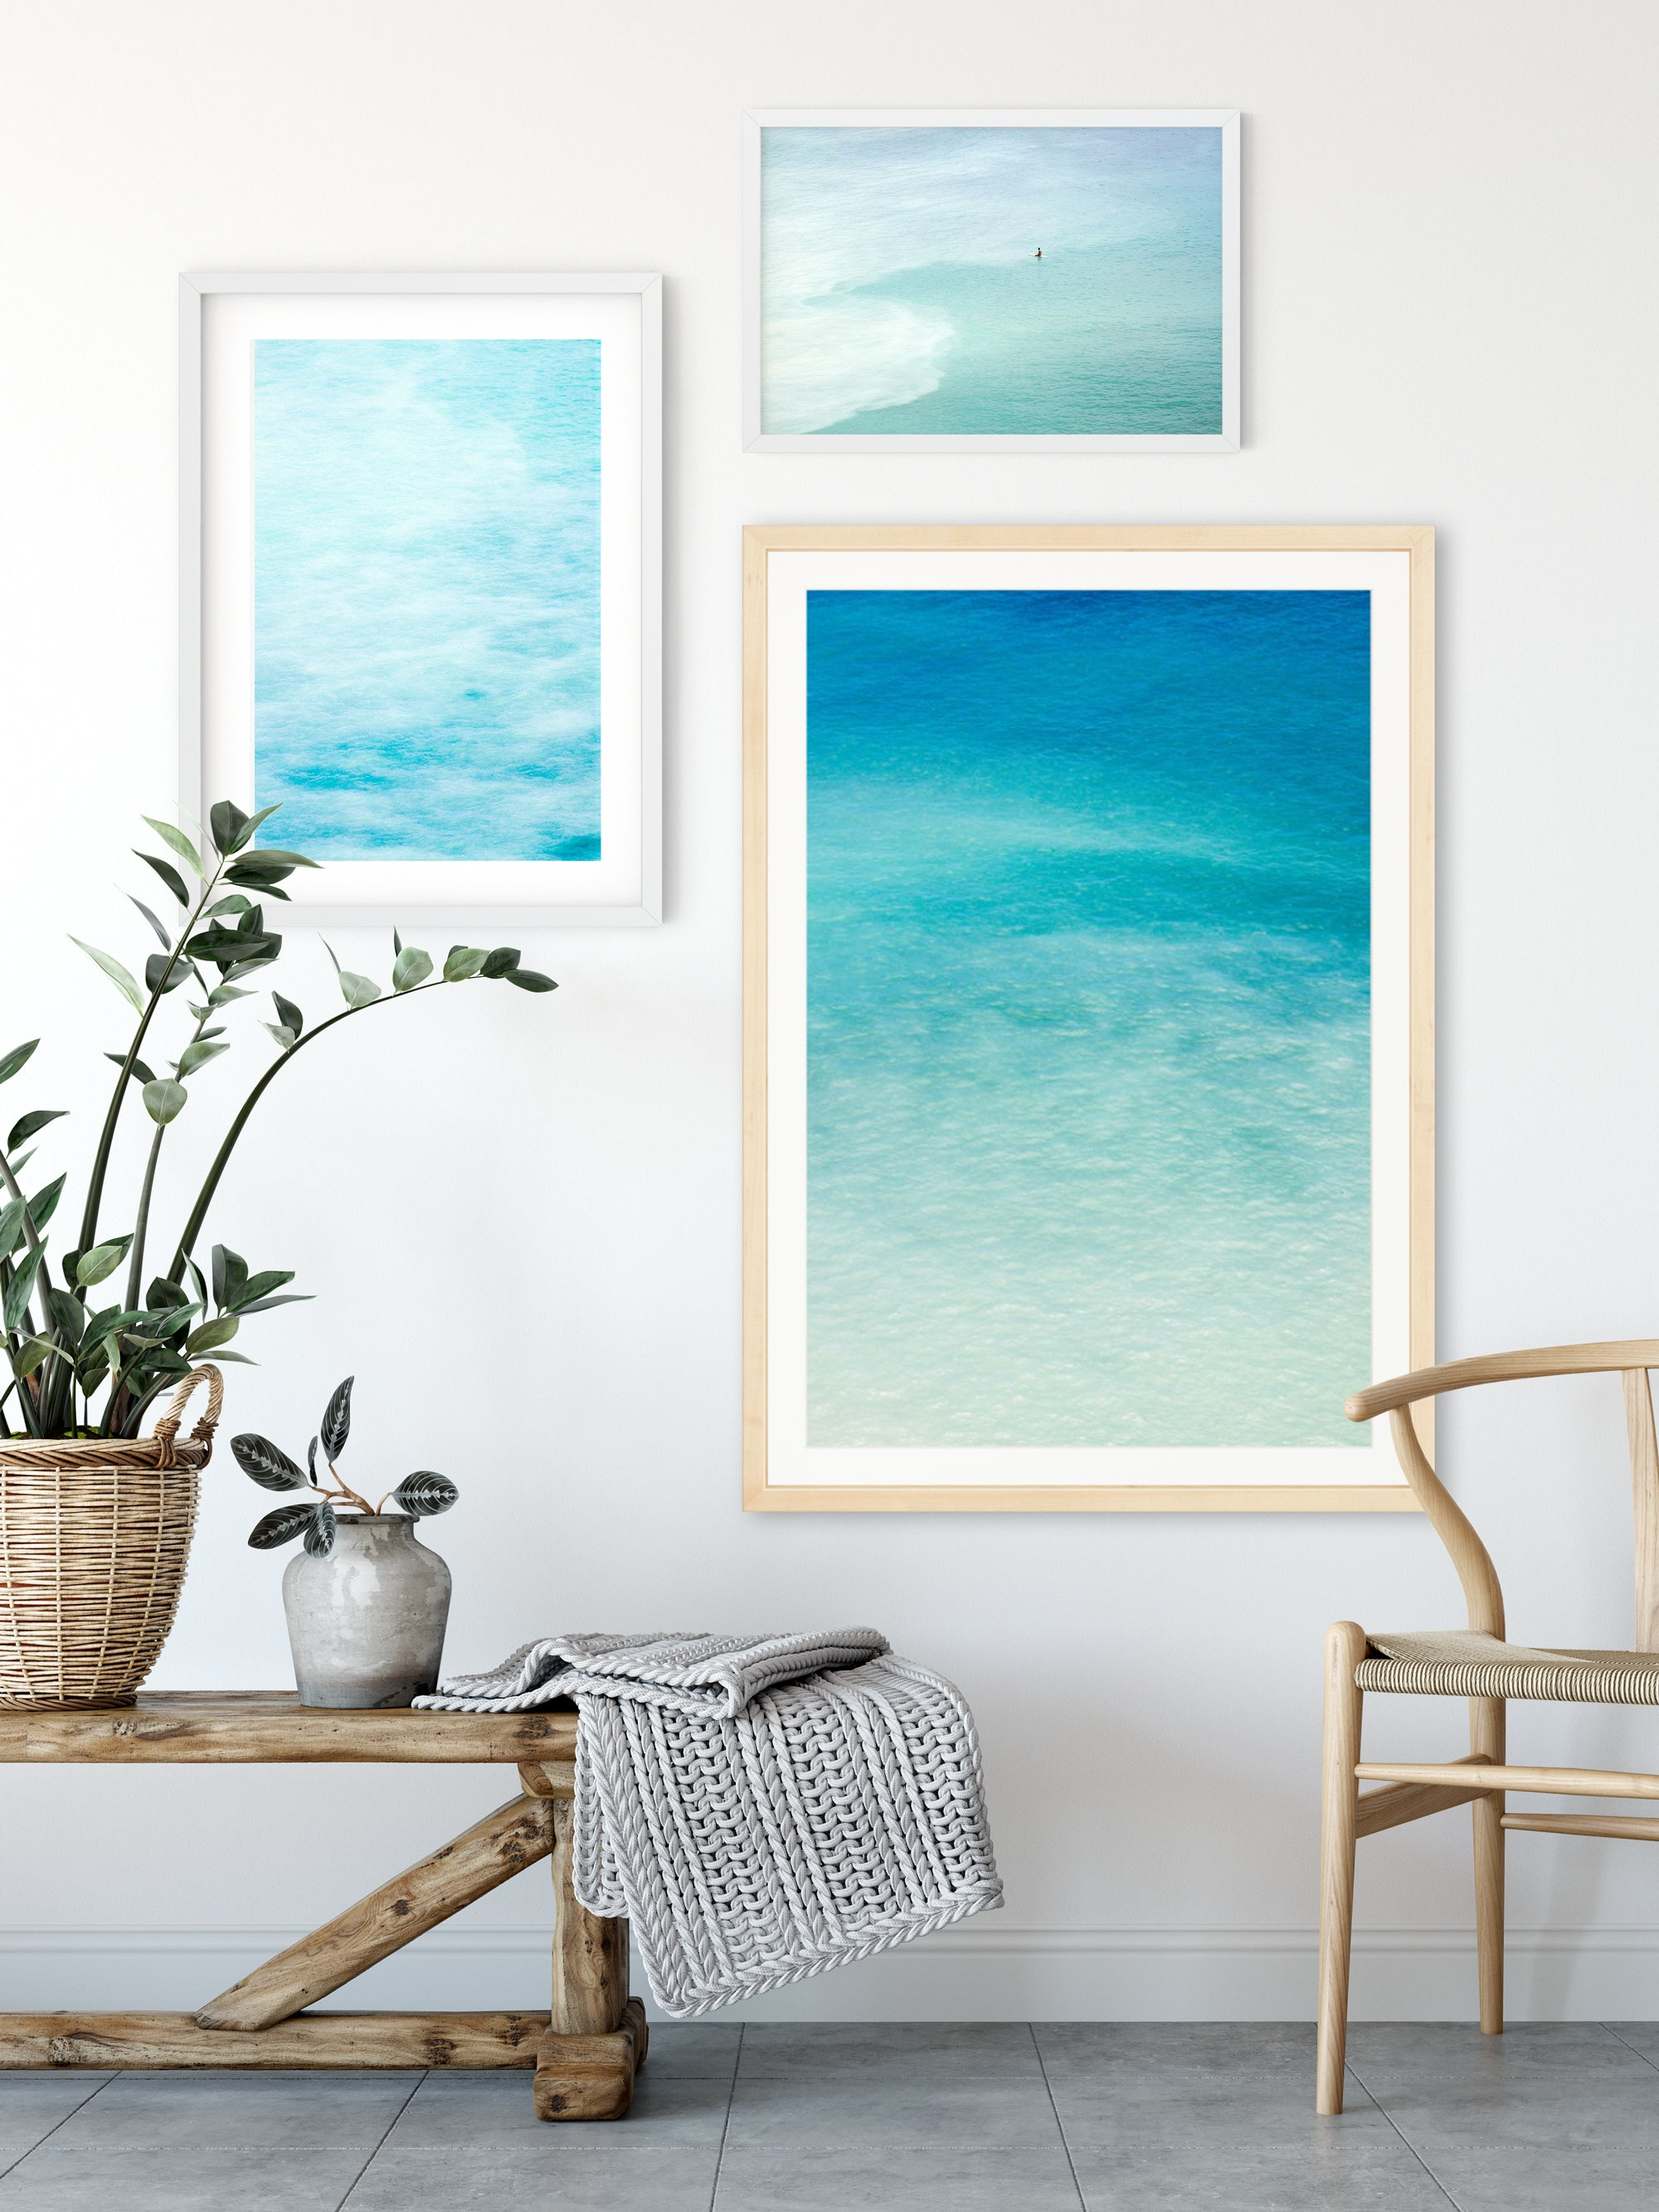 Magoito - Turquoise blue abstract photo gallery wall by Cattie Coyle Photography